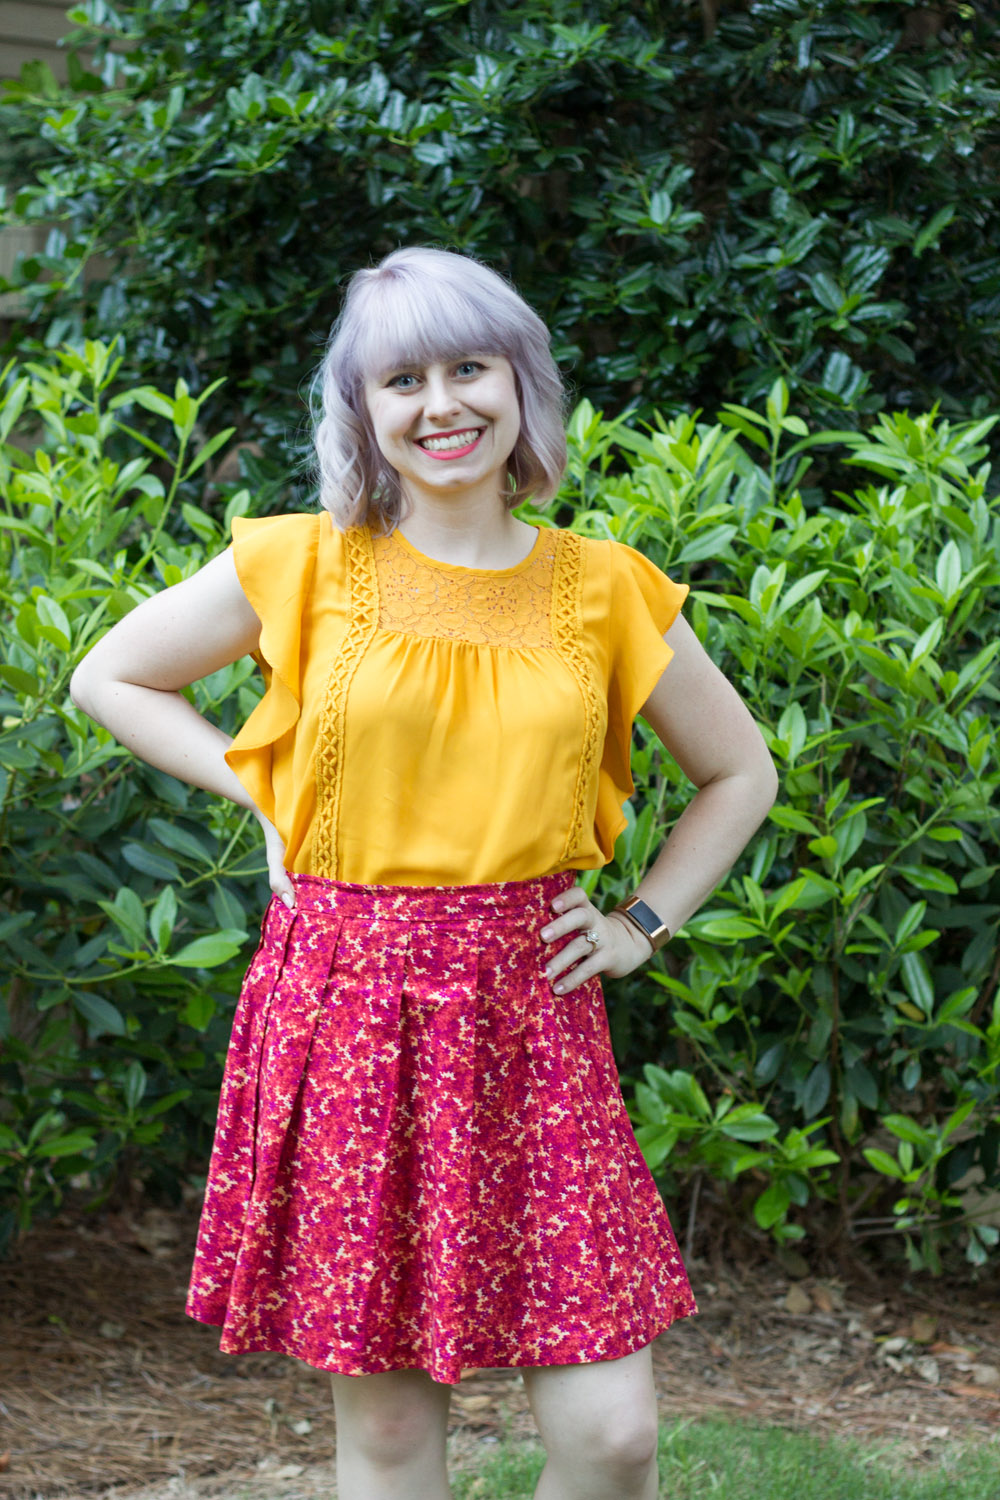 Silver Blonde Hair, Yellow Flutter Sleeve Top from Target, Handmade Floral Skirt